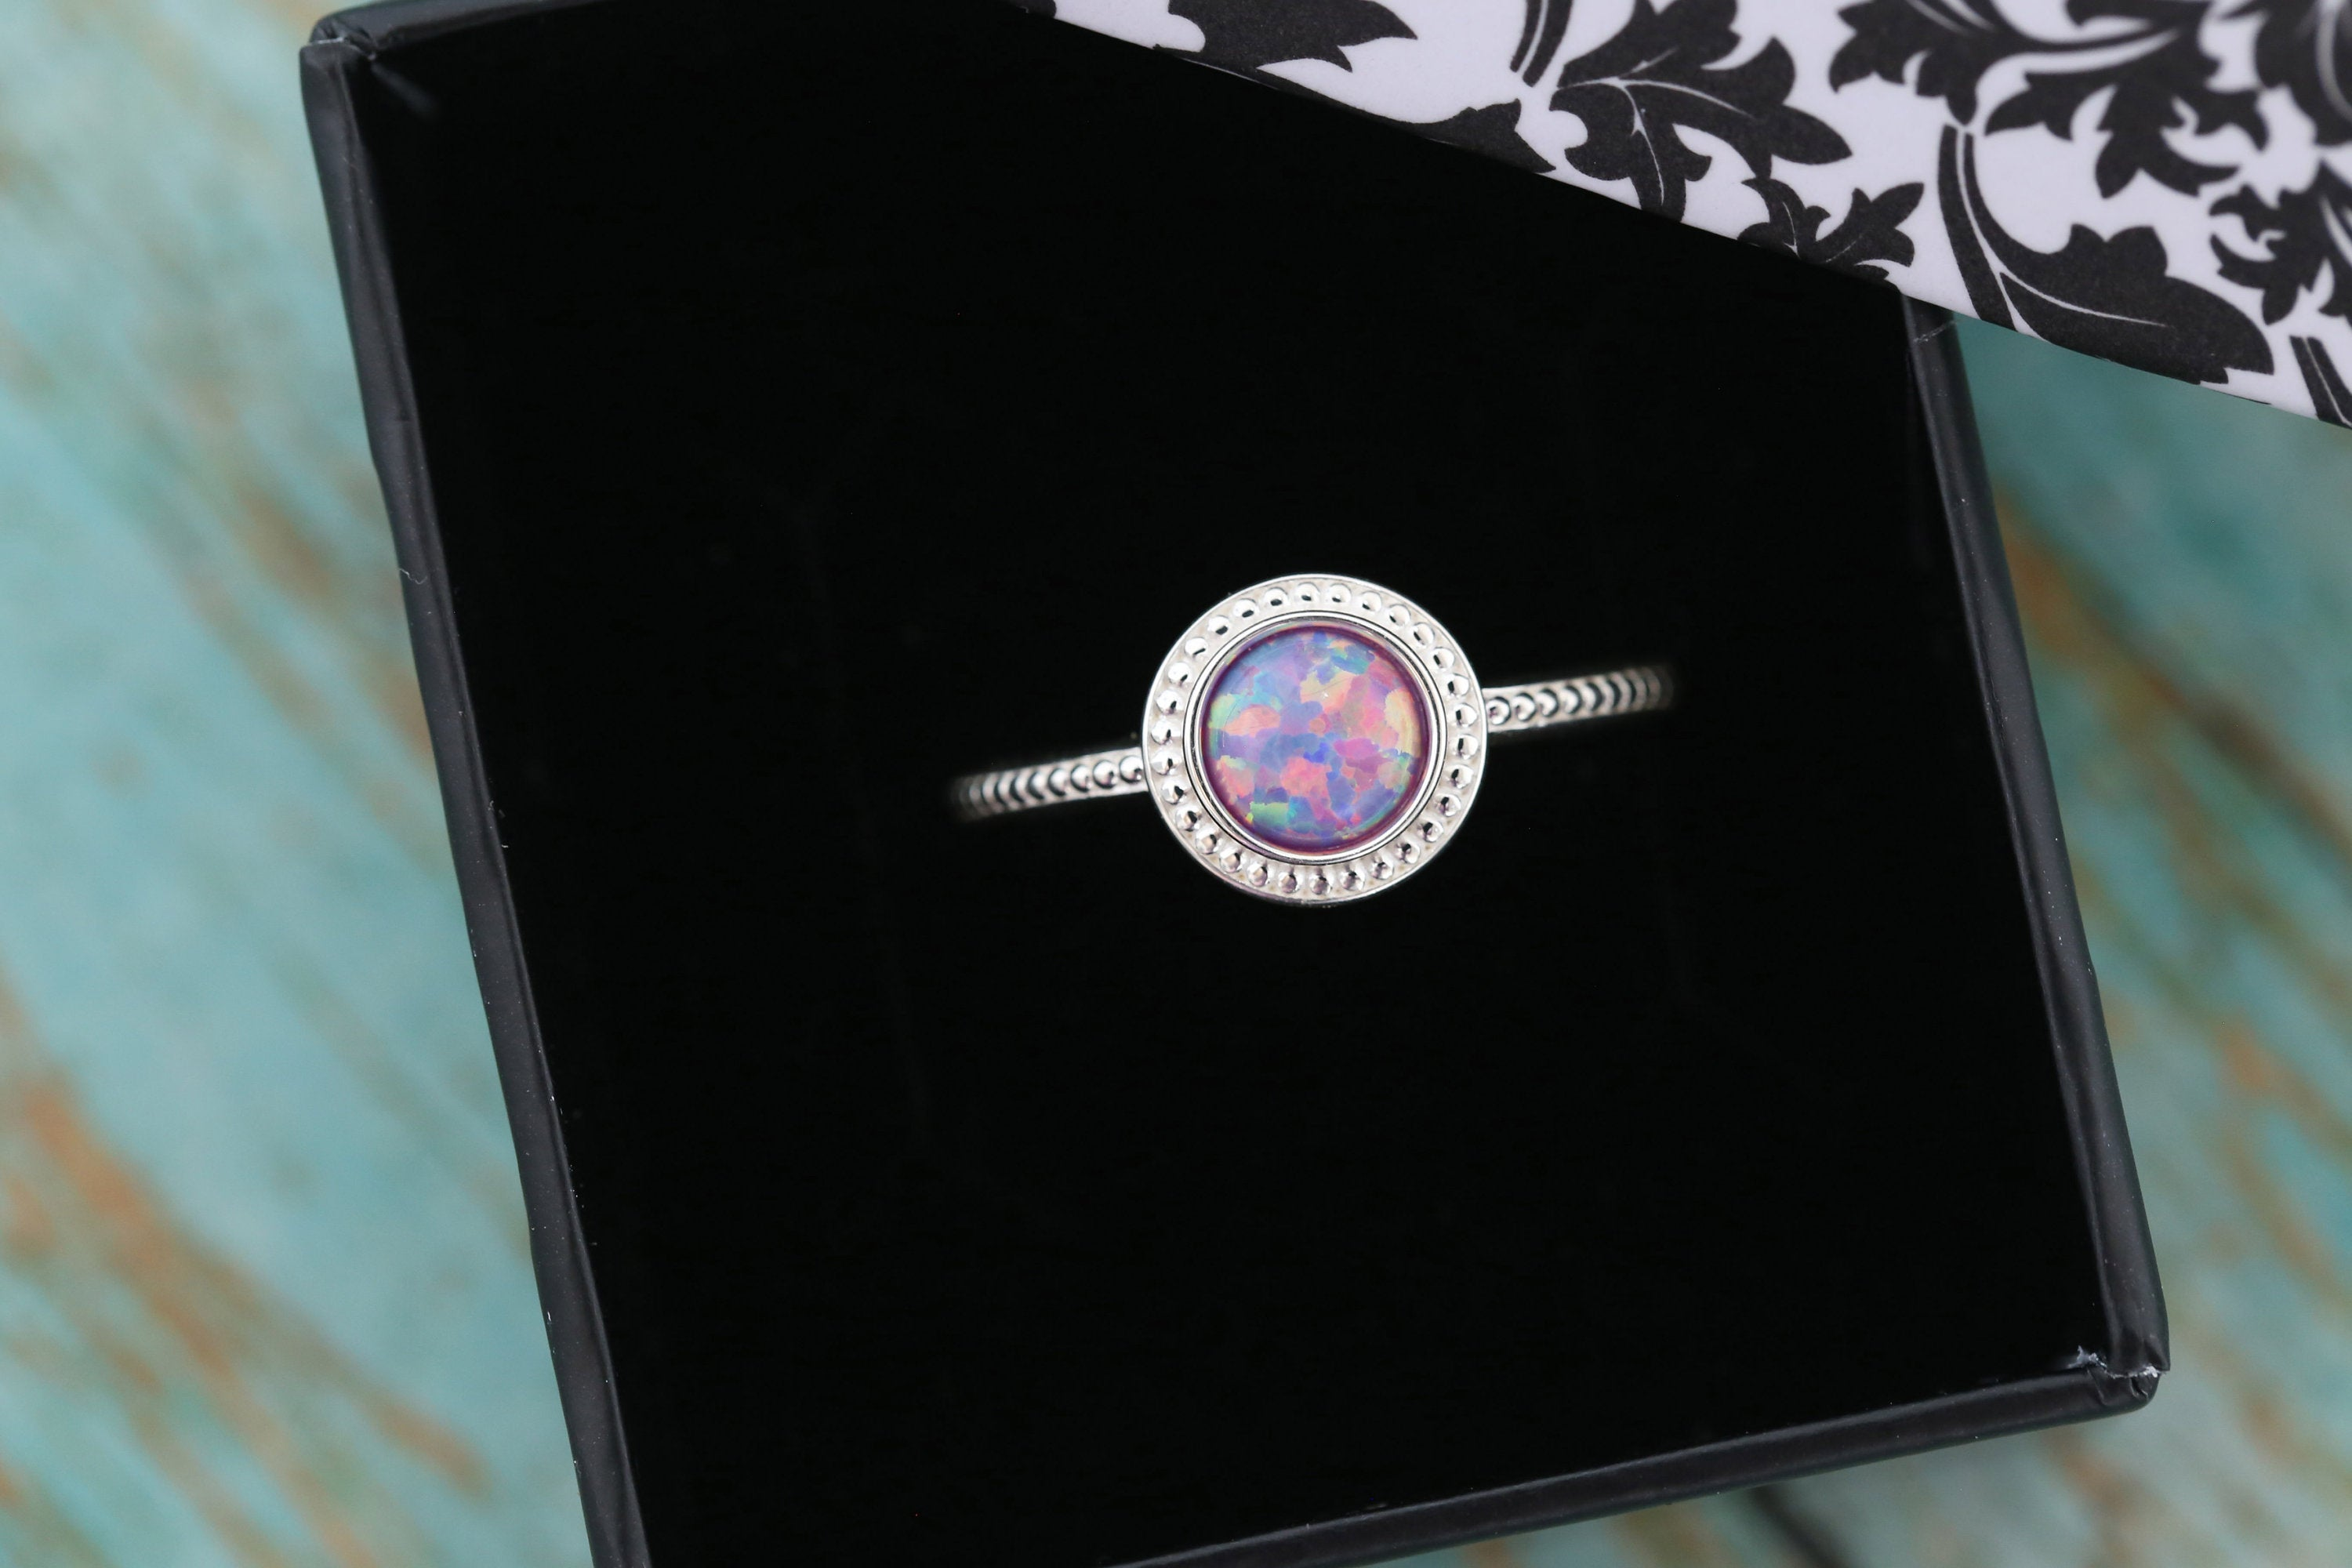 6mm Opal Cremation Ring - Sterling Silver Beaded Ring - Cremation Jewelry - Ash Ring - Ash Jewelry - Urn Ring - Pet Loss - 6mm9